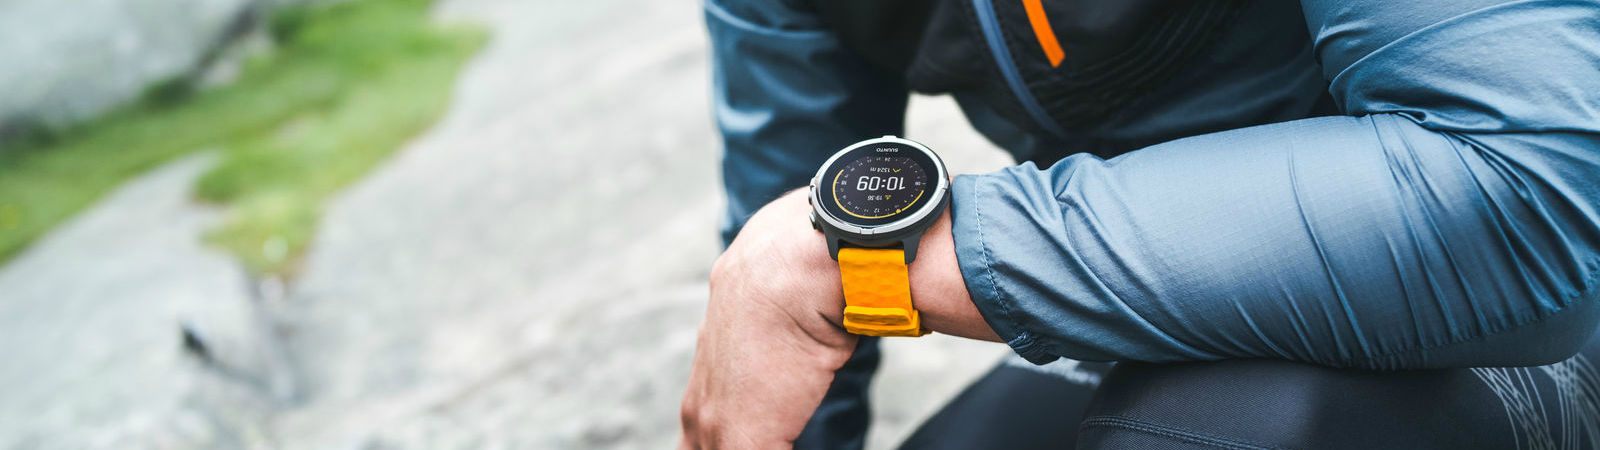 Suunto Spartan Activity Tracking Smart Watch available at Sportique